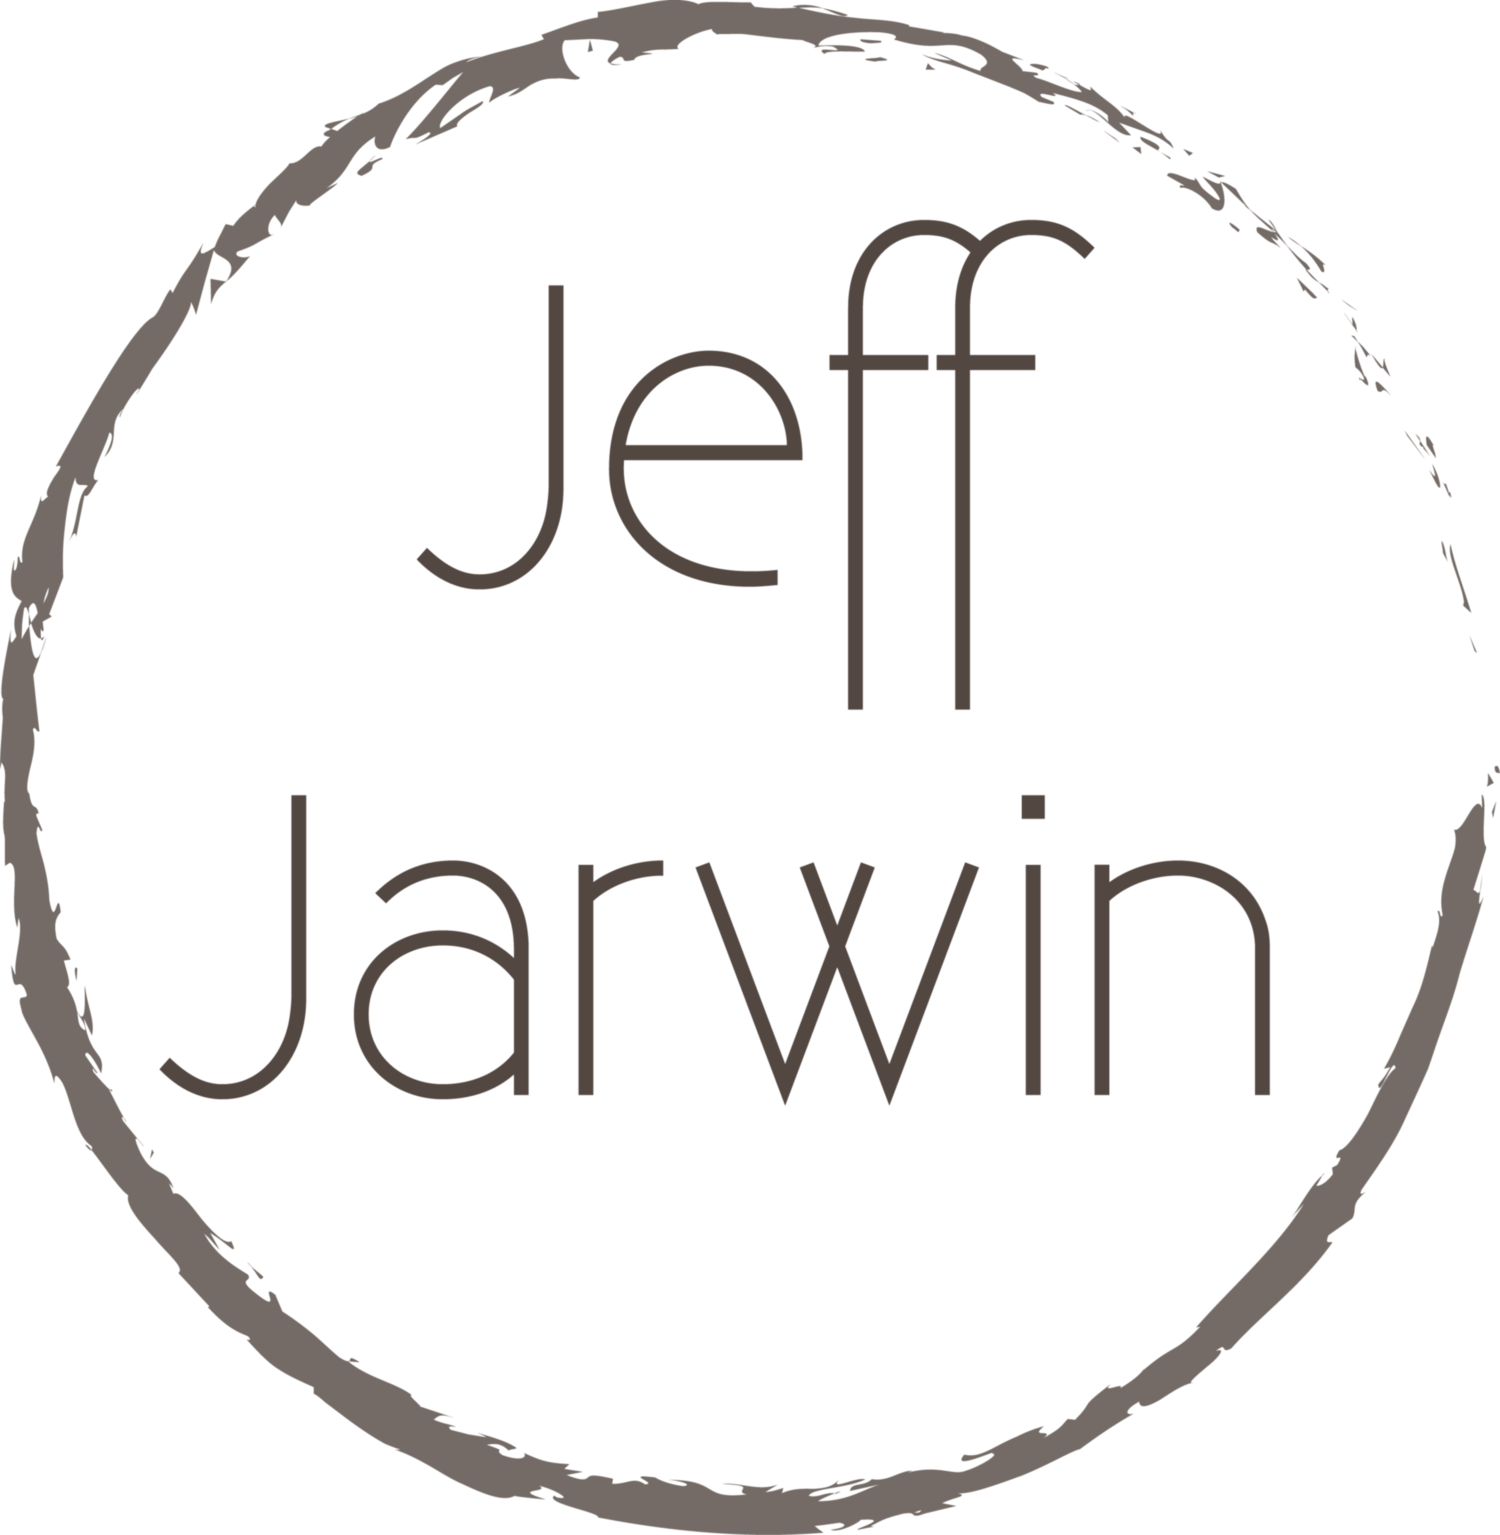 Jeff Jarwin Cosmetics